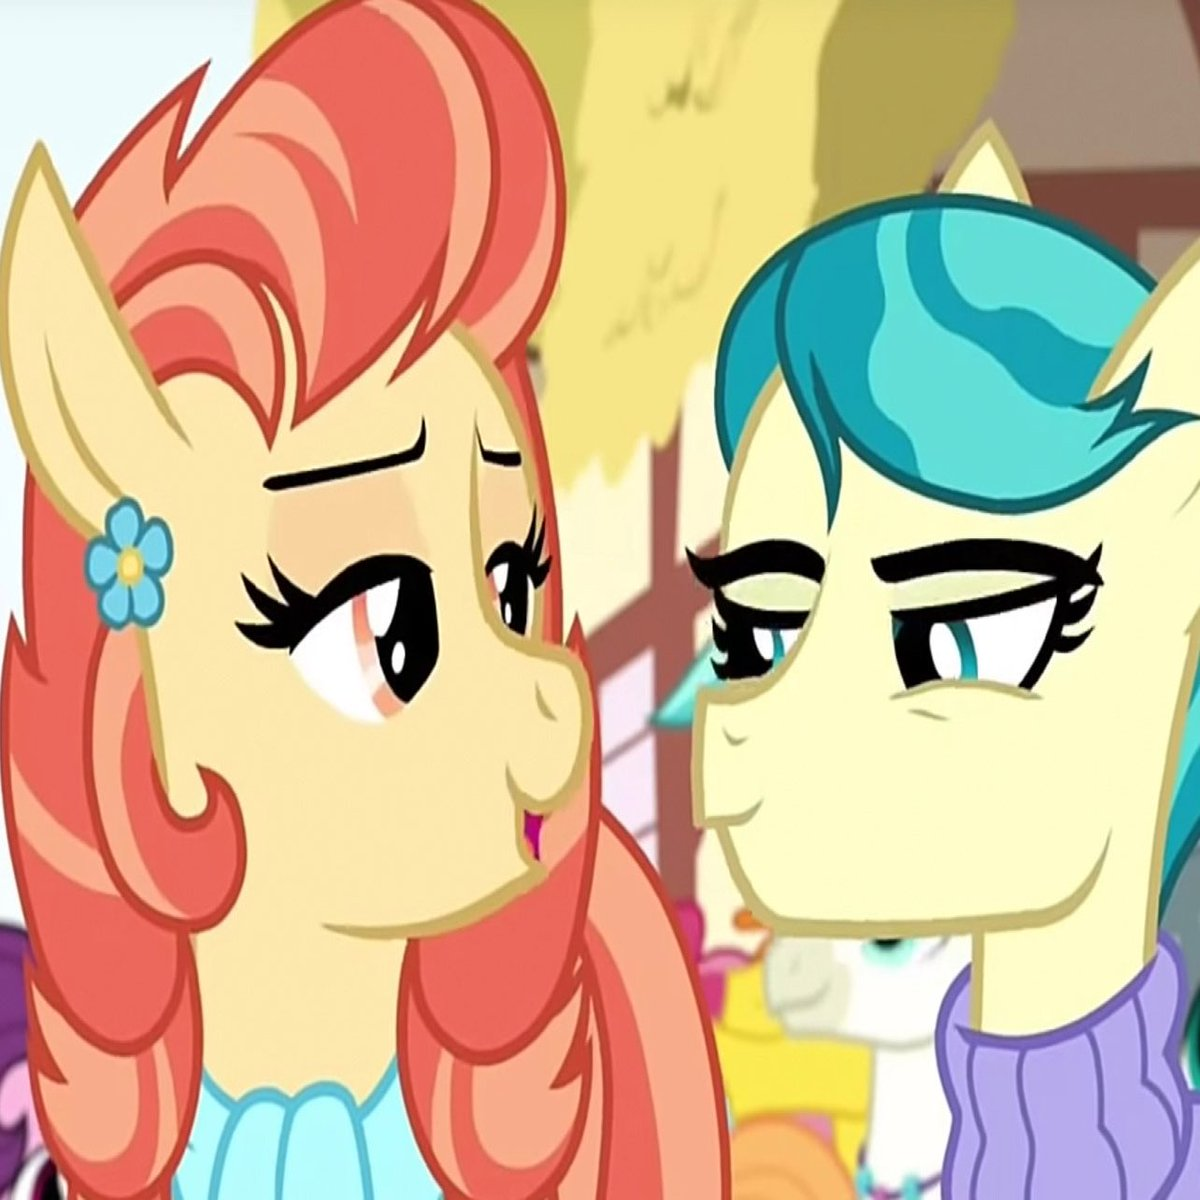 Love is love.   #Brony #Pride <br>http://pic.twitter.com/sT0B1rWGTf